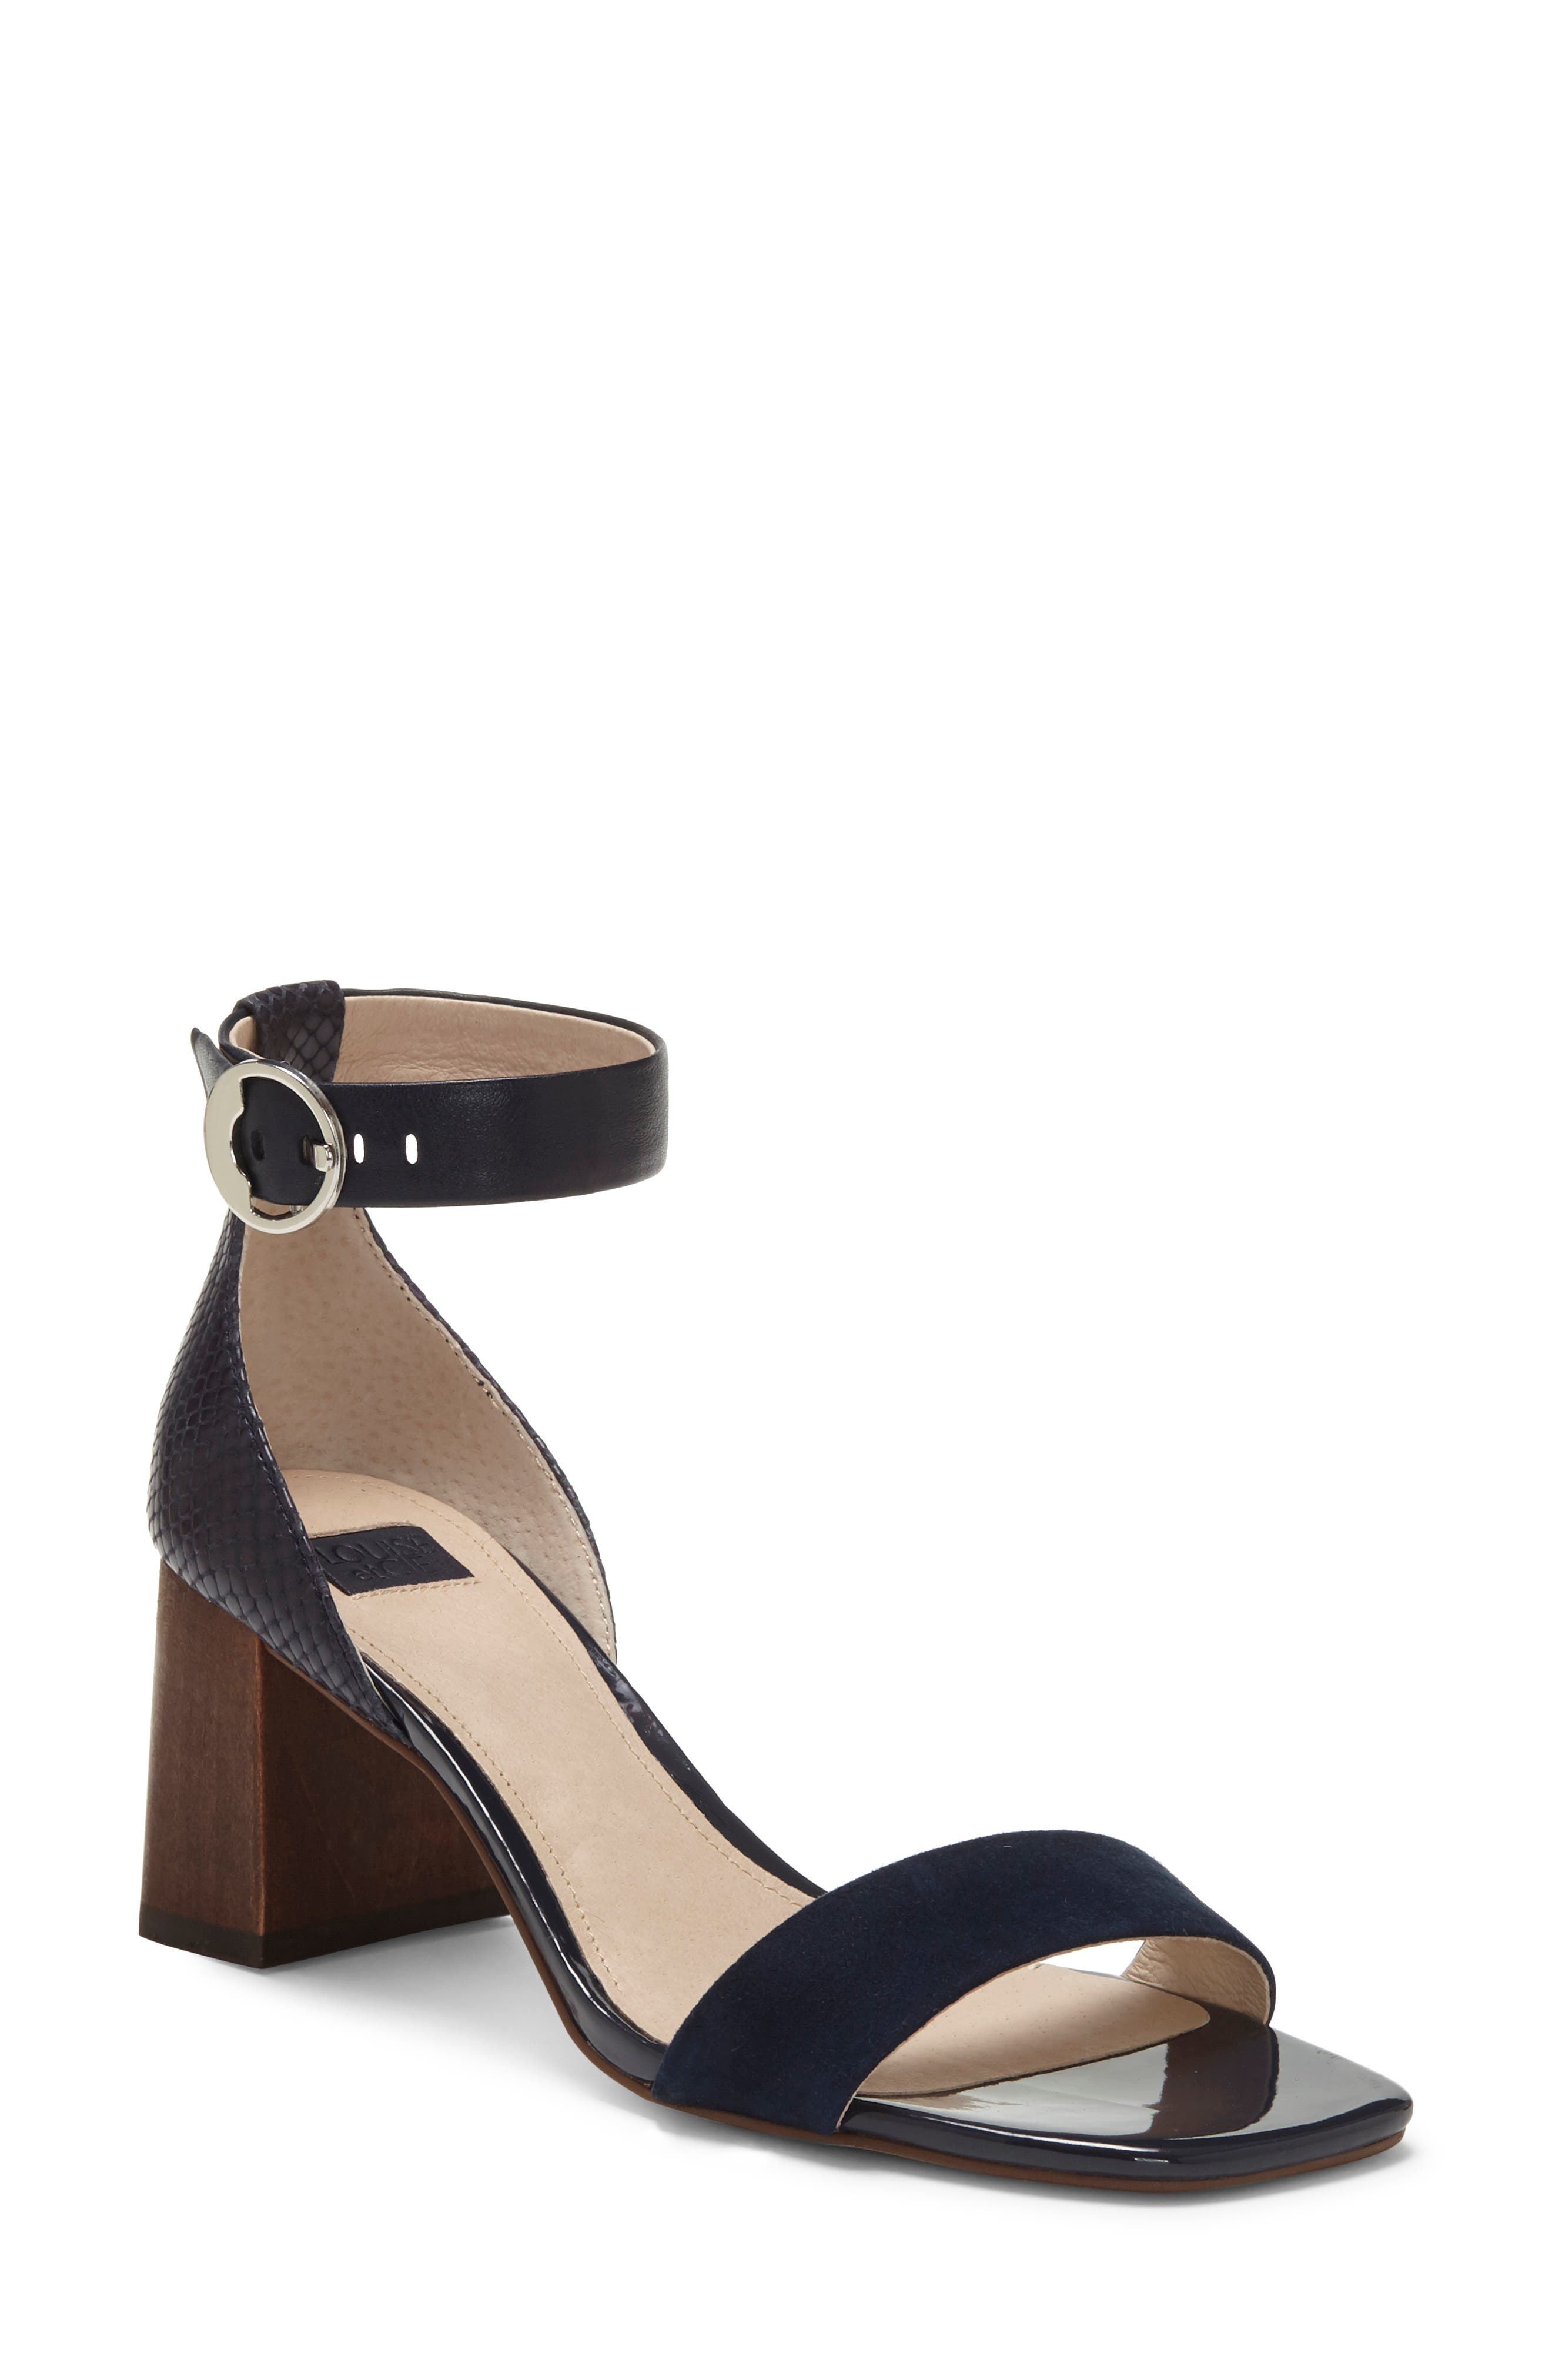 A woodgrain block heel grounds this ankle-strap sandal in earthy vintage-inspired style. Style Name: Louise Et Cie Gabrie Ankle Strap Sandal (Women). Style Number: 6017193. Available in stores.